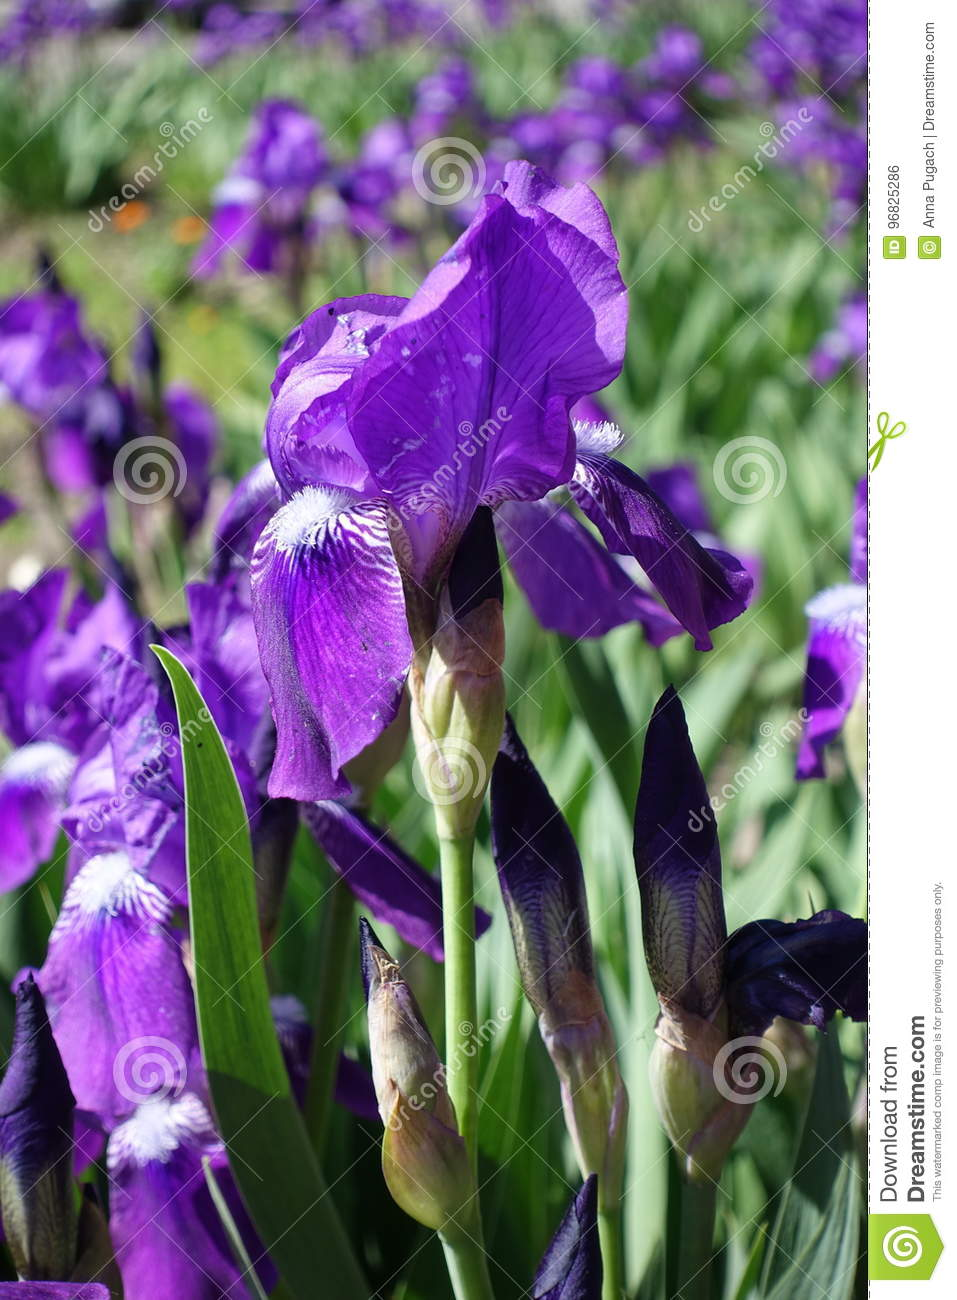 Flower And Buds Of Purple Bearded Iris Stock Photo Image Of Leaf